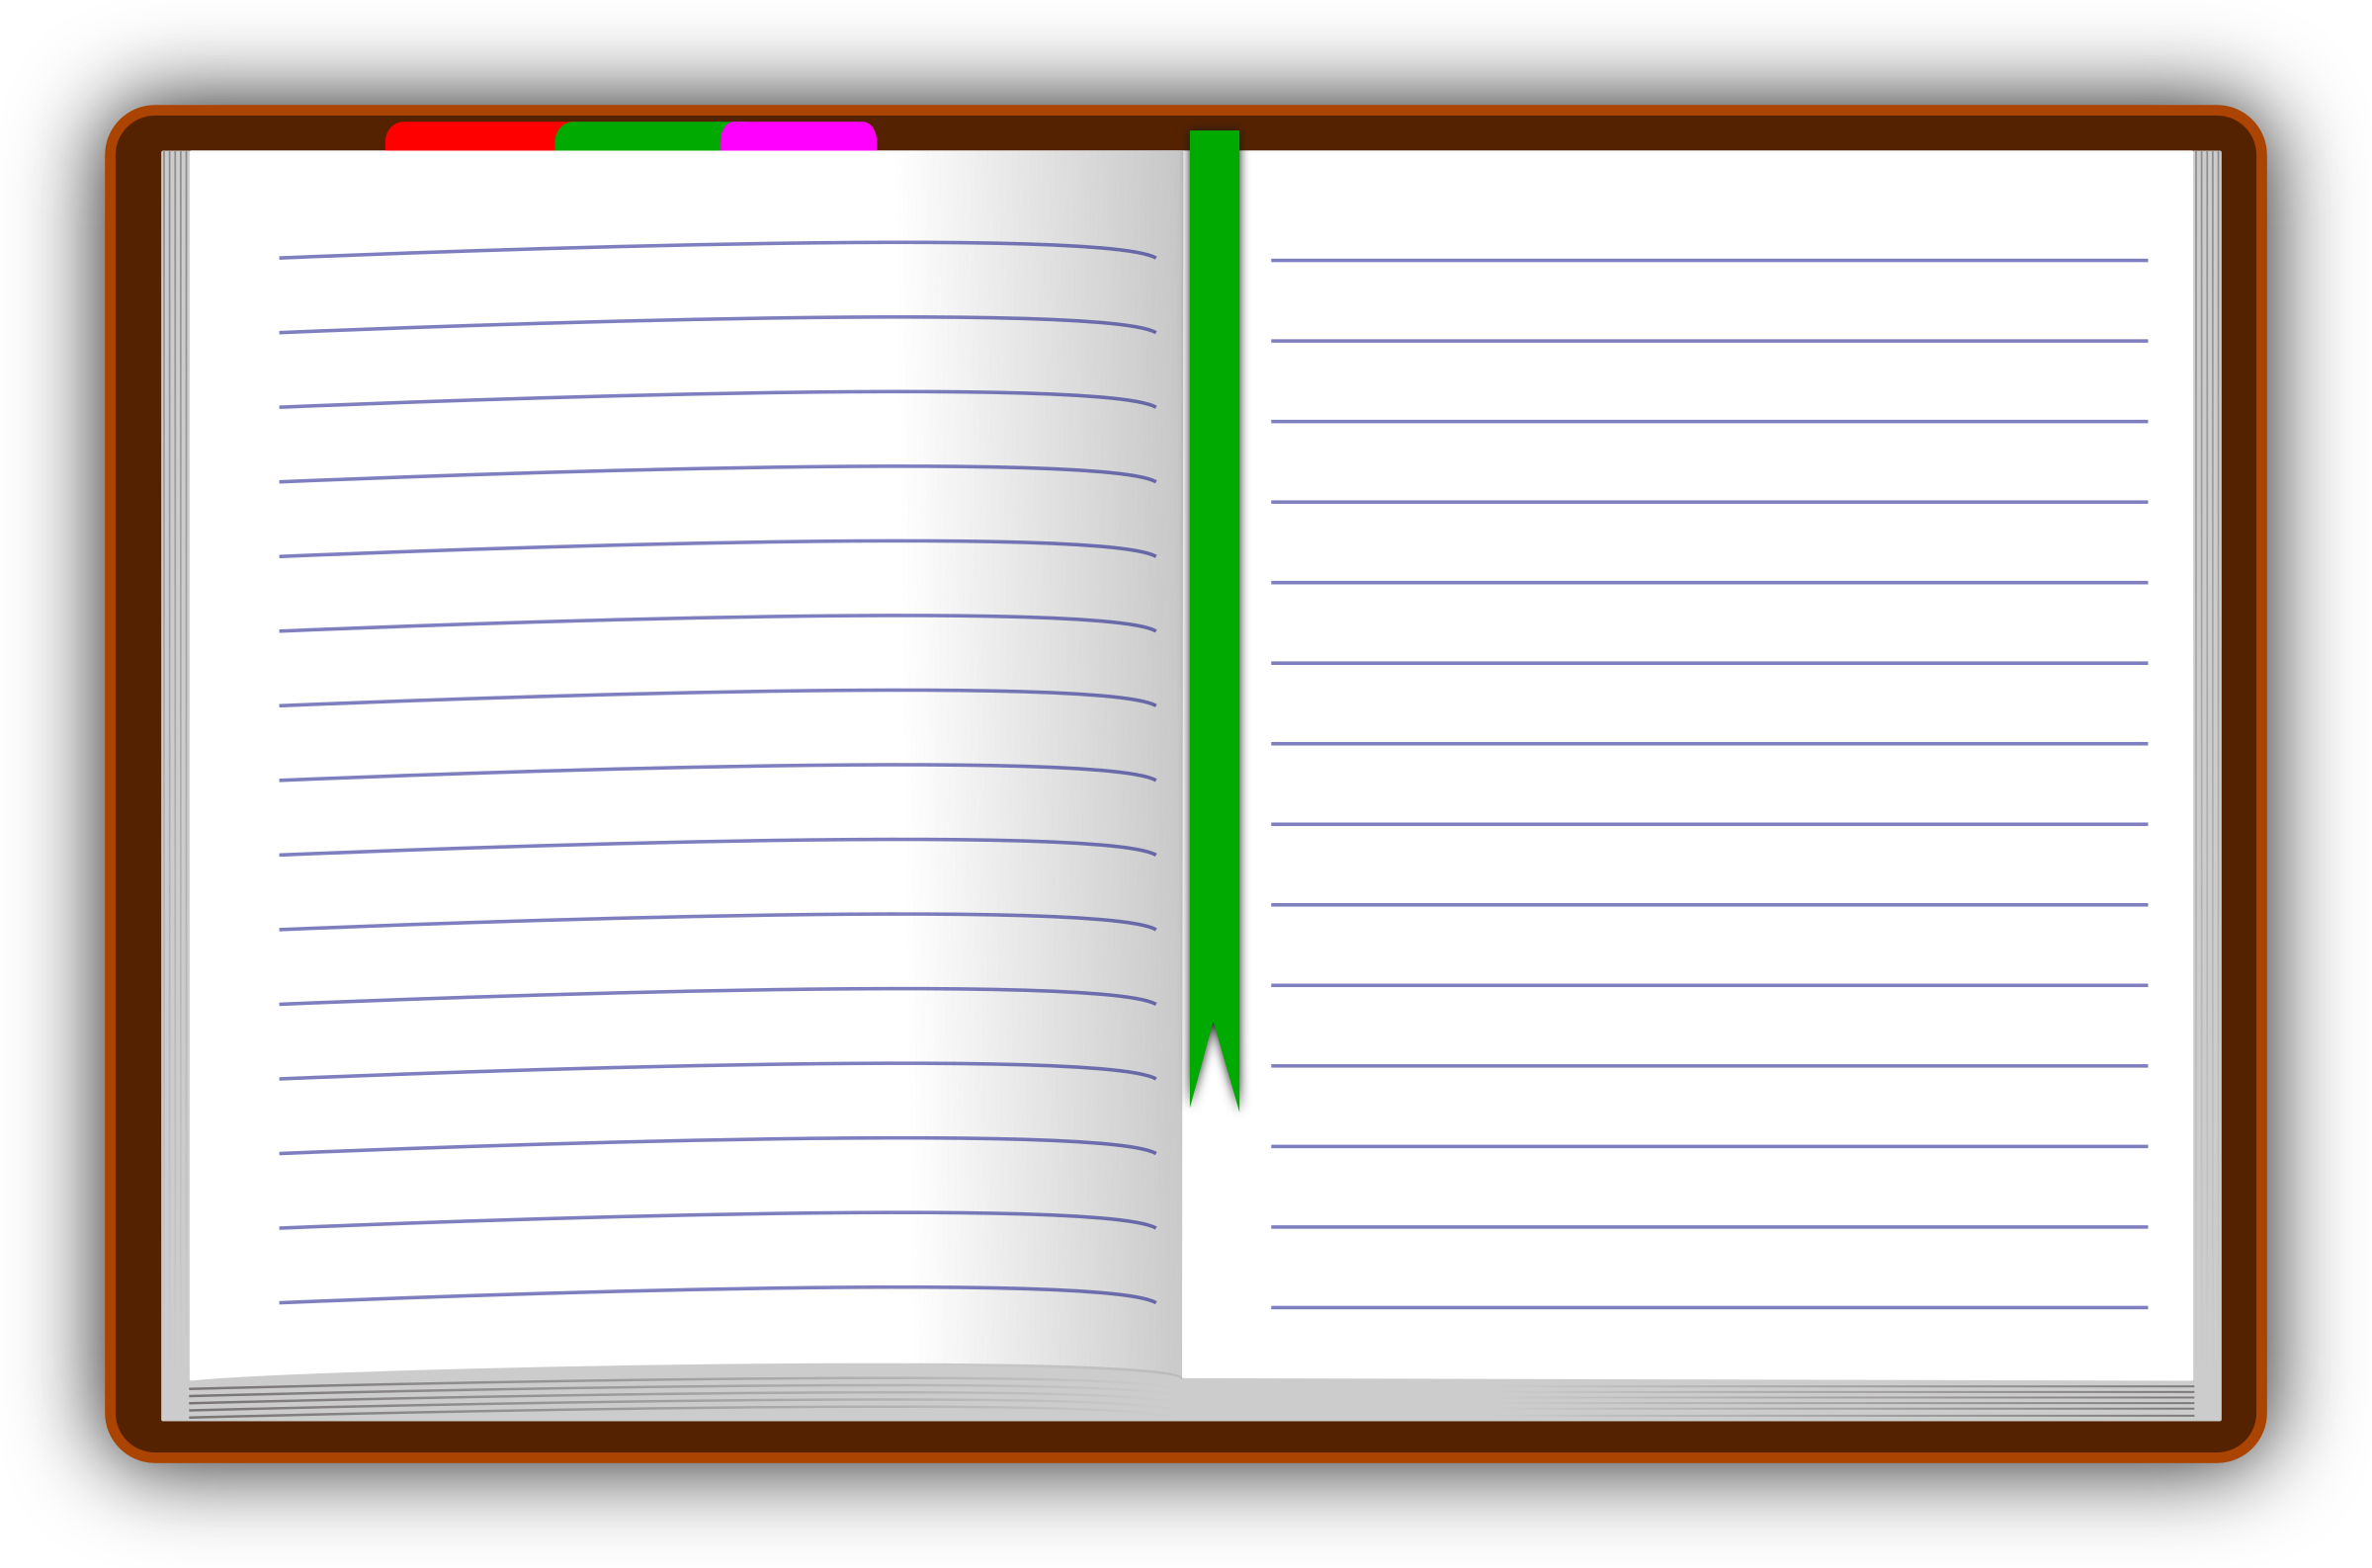 Agenda book clipart png royalty free Diary Clipart | Clipart Panda - Free Clipart Images png royalty free